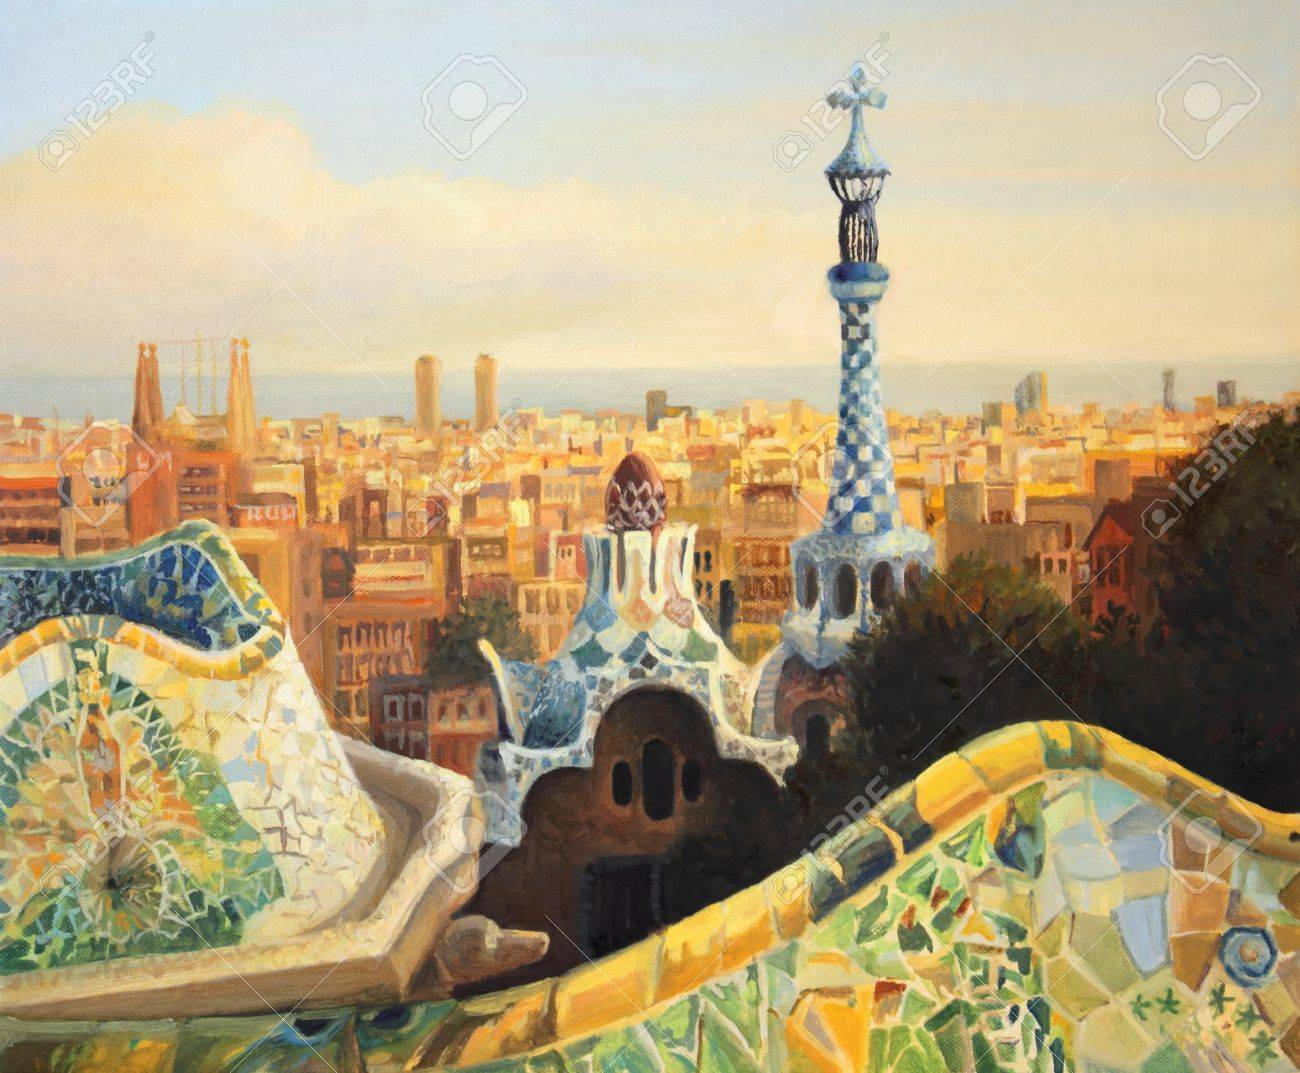 Barcelona, Park Guell terrace at dusk painted on the canvas by me Kiril Stanchev. Stock Photo - 15339621